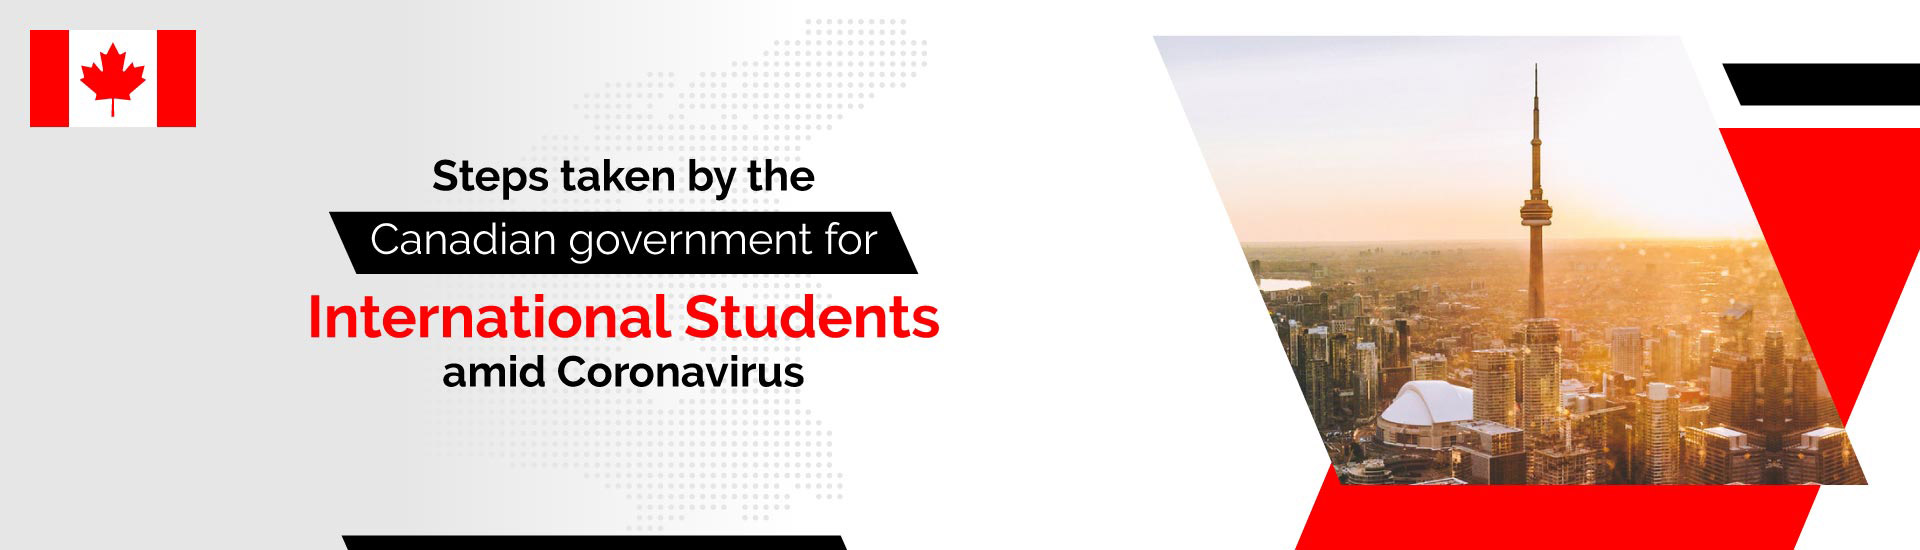 Steps taken by the Canadian government for International students amid Coronavirus